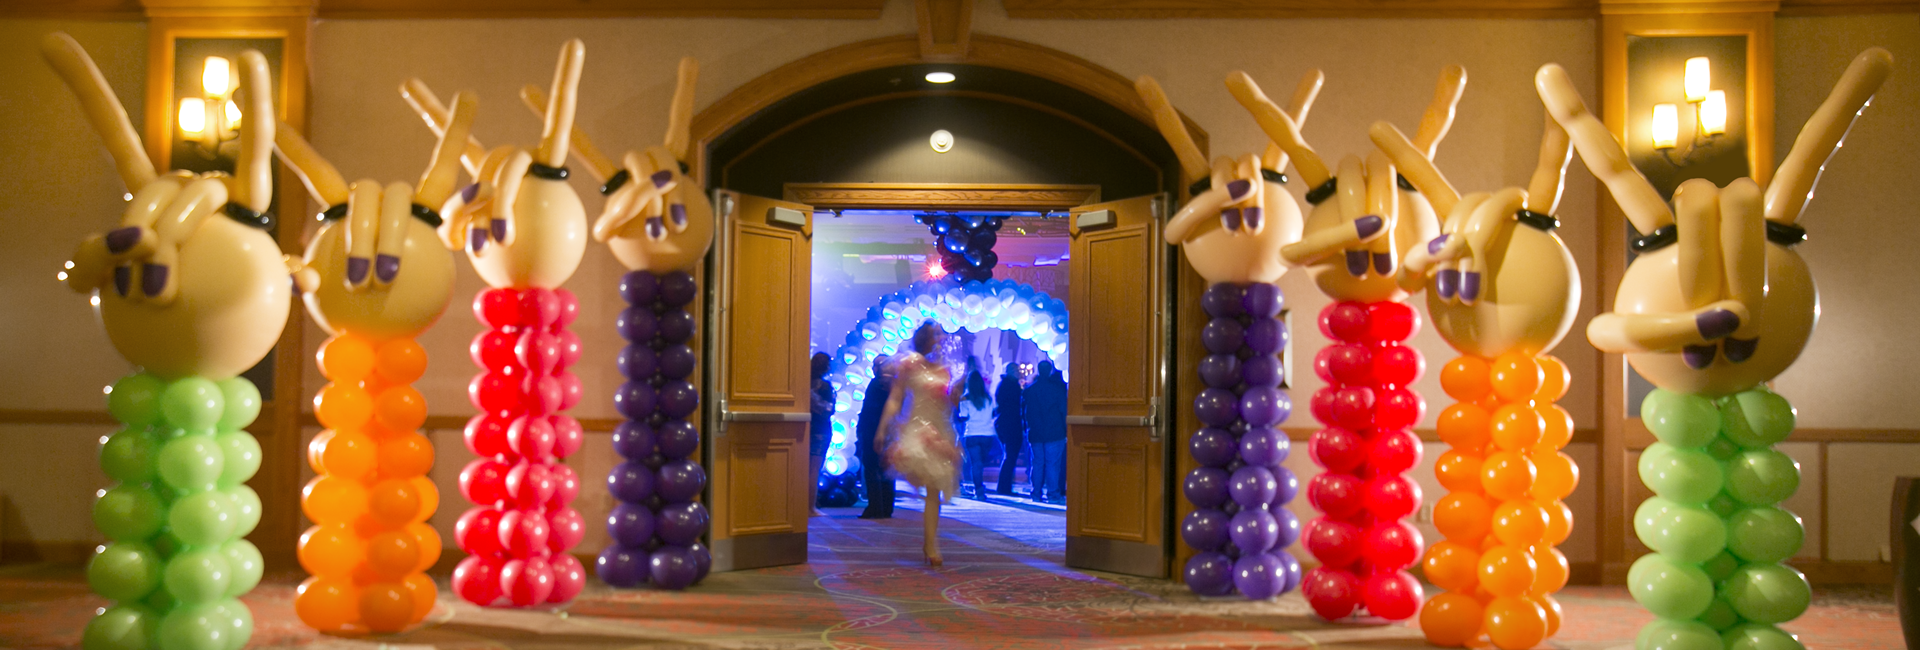 Pacha Balloon Creations, Vaughan, Ont, Canada, Event Balloon Decorating Experts